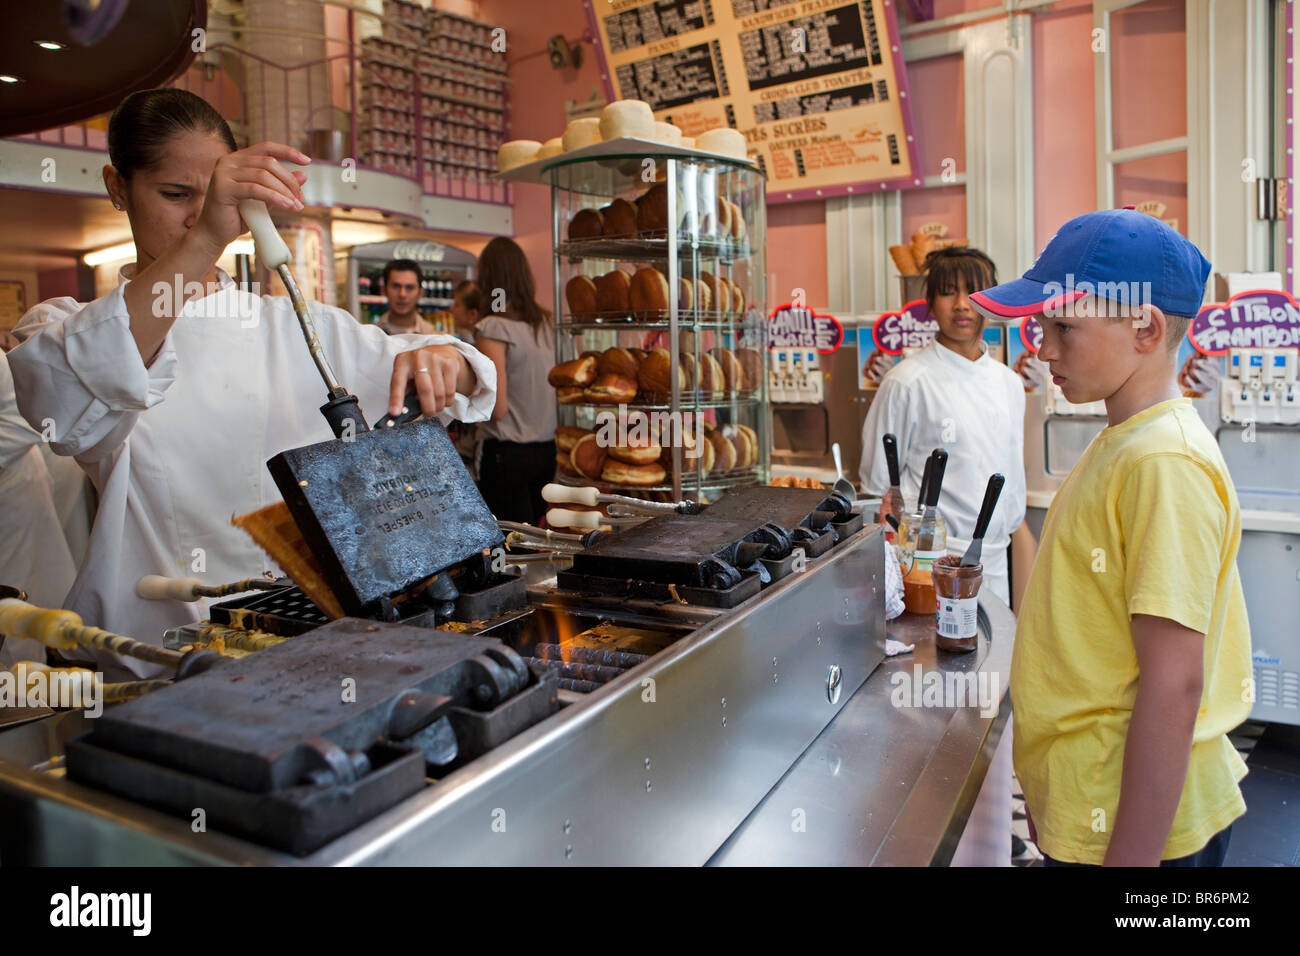 Model-released Boy waiting for freshly made waffle - Stock Image